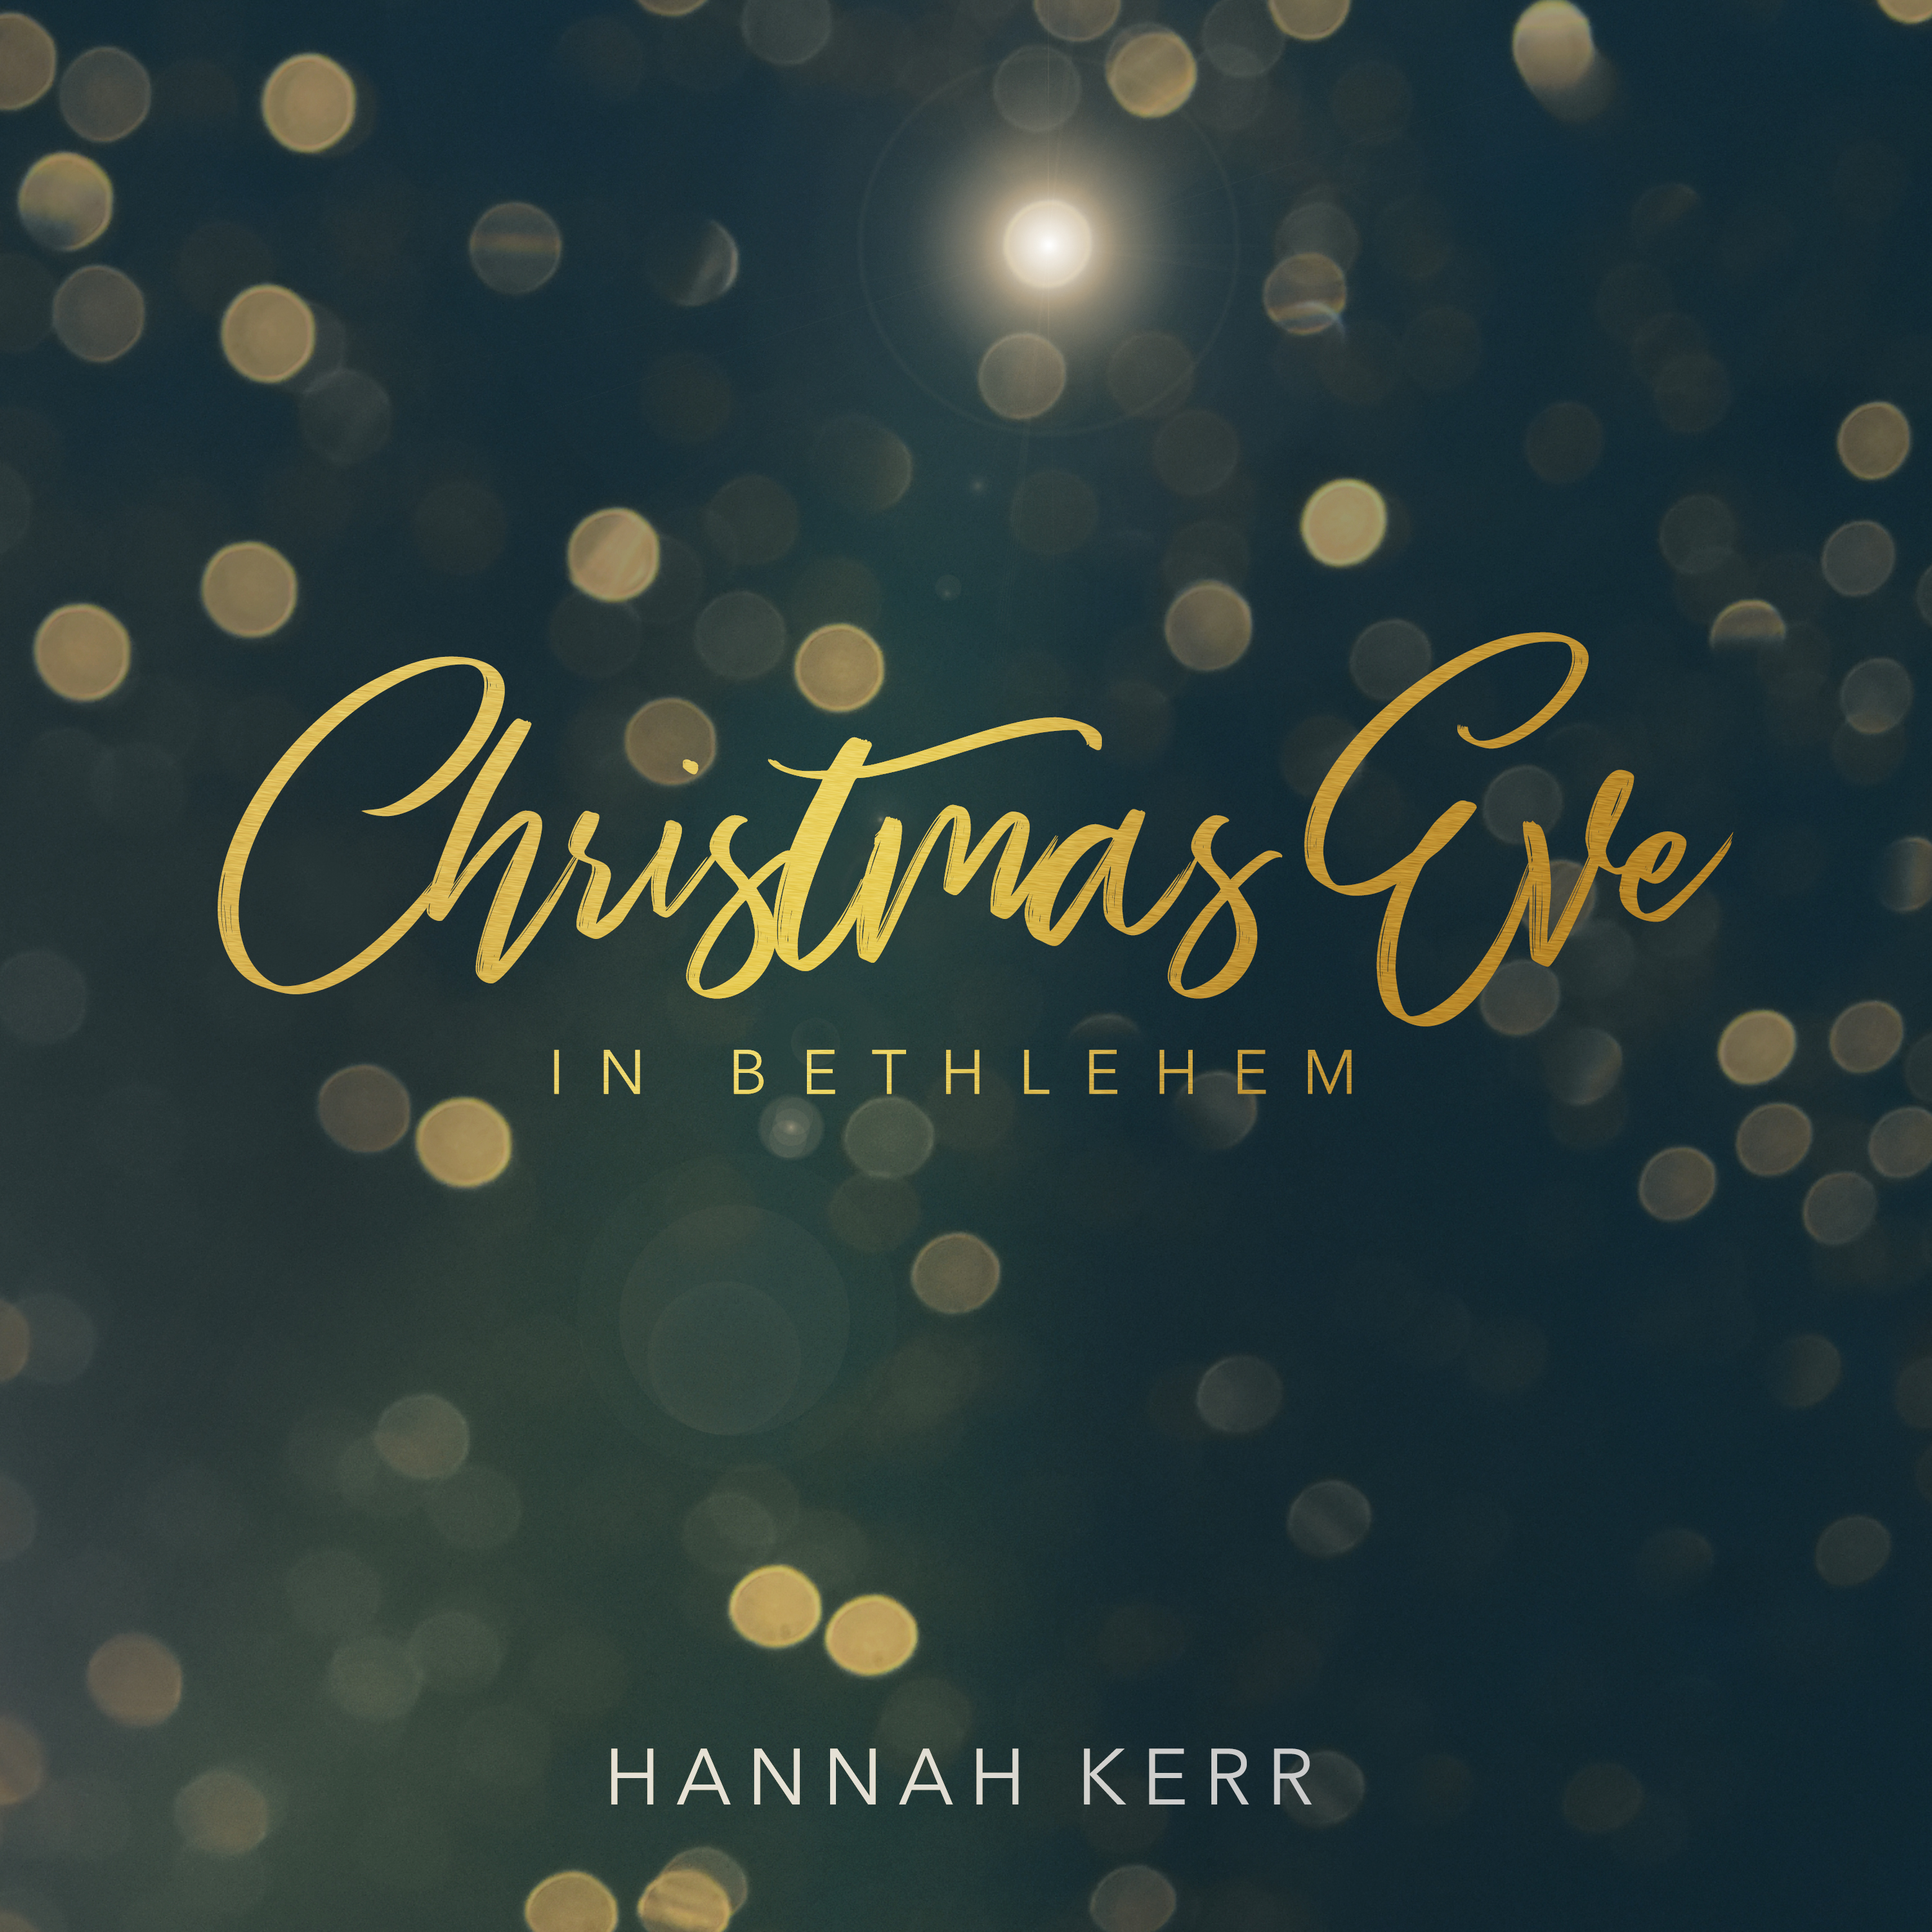 HANNAH KERR IS SET TO PERFORM CHRISTMAS EVE IN BETHLEHEM ON OCT. 19